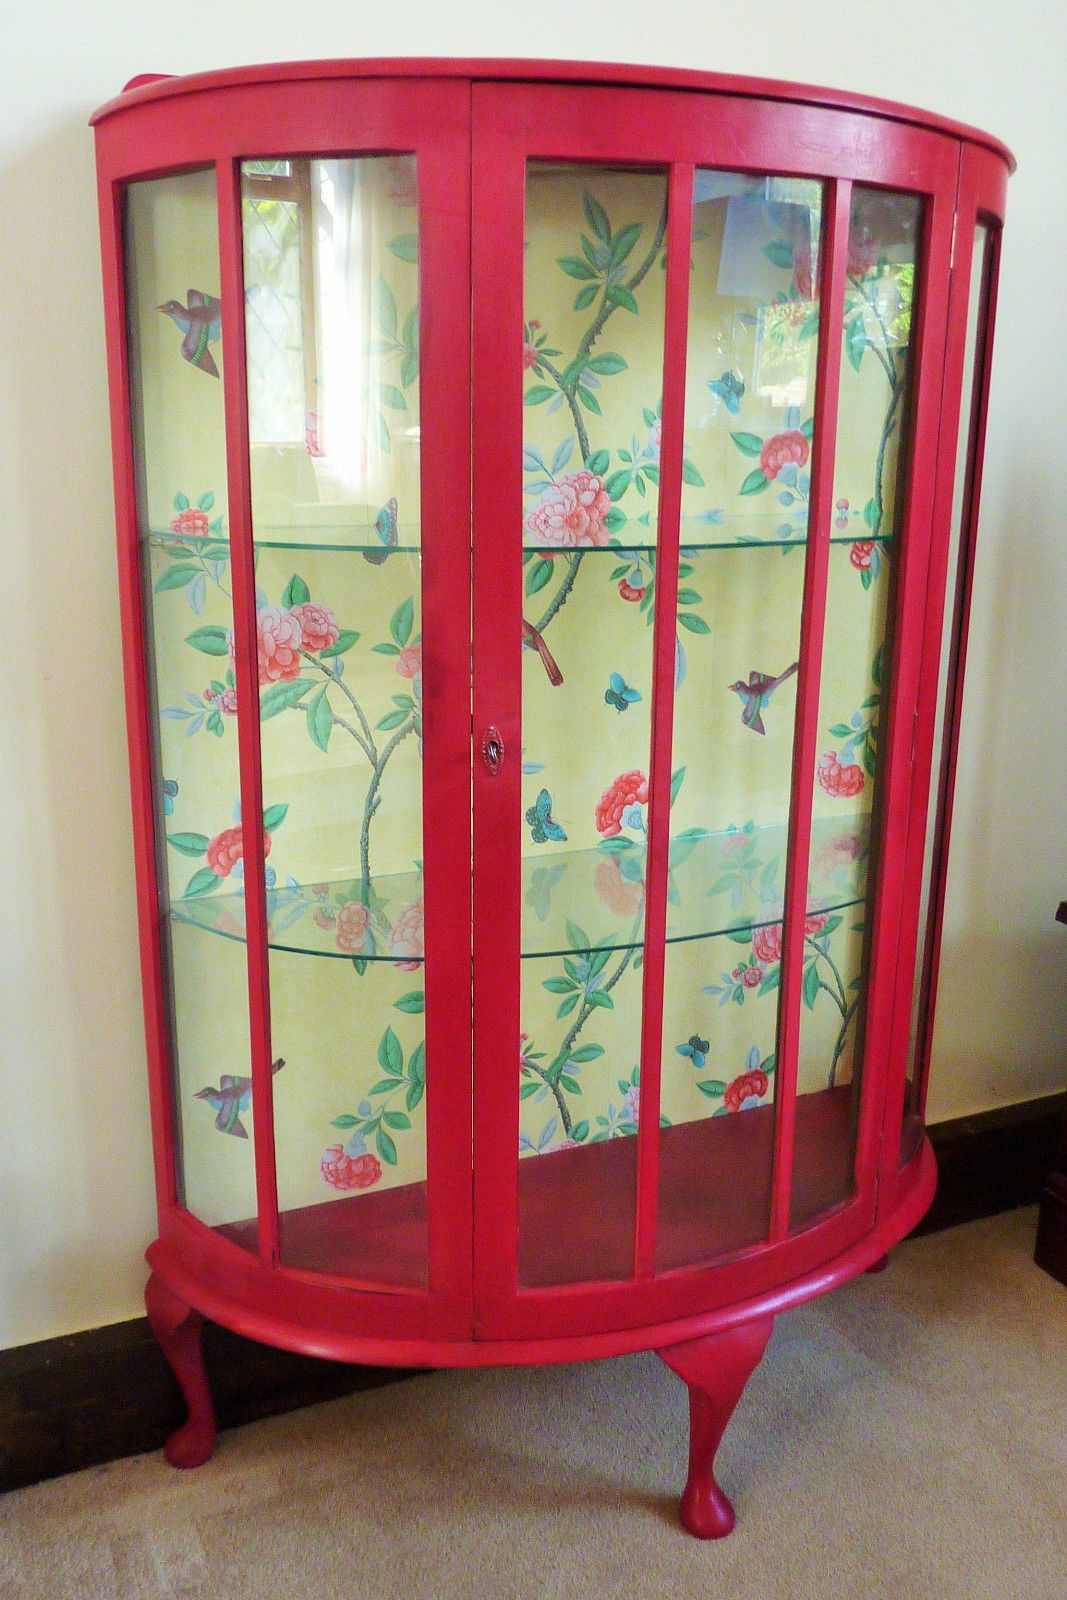 Captivating Vintage Bow Fronted Display Cabinet Annie Sloan Paint And Vu0026A Inspired  Wallpaper | Annie Sloan Paints, Display Cabinets And Annie Sloan